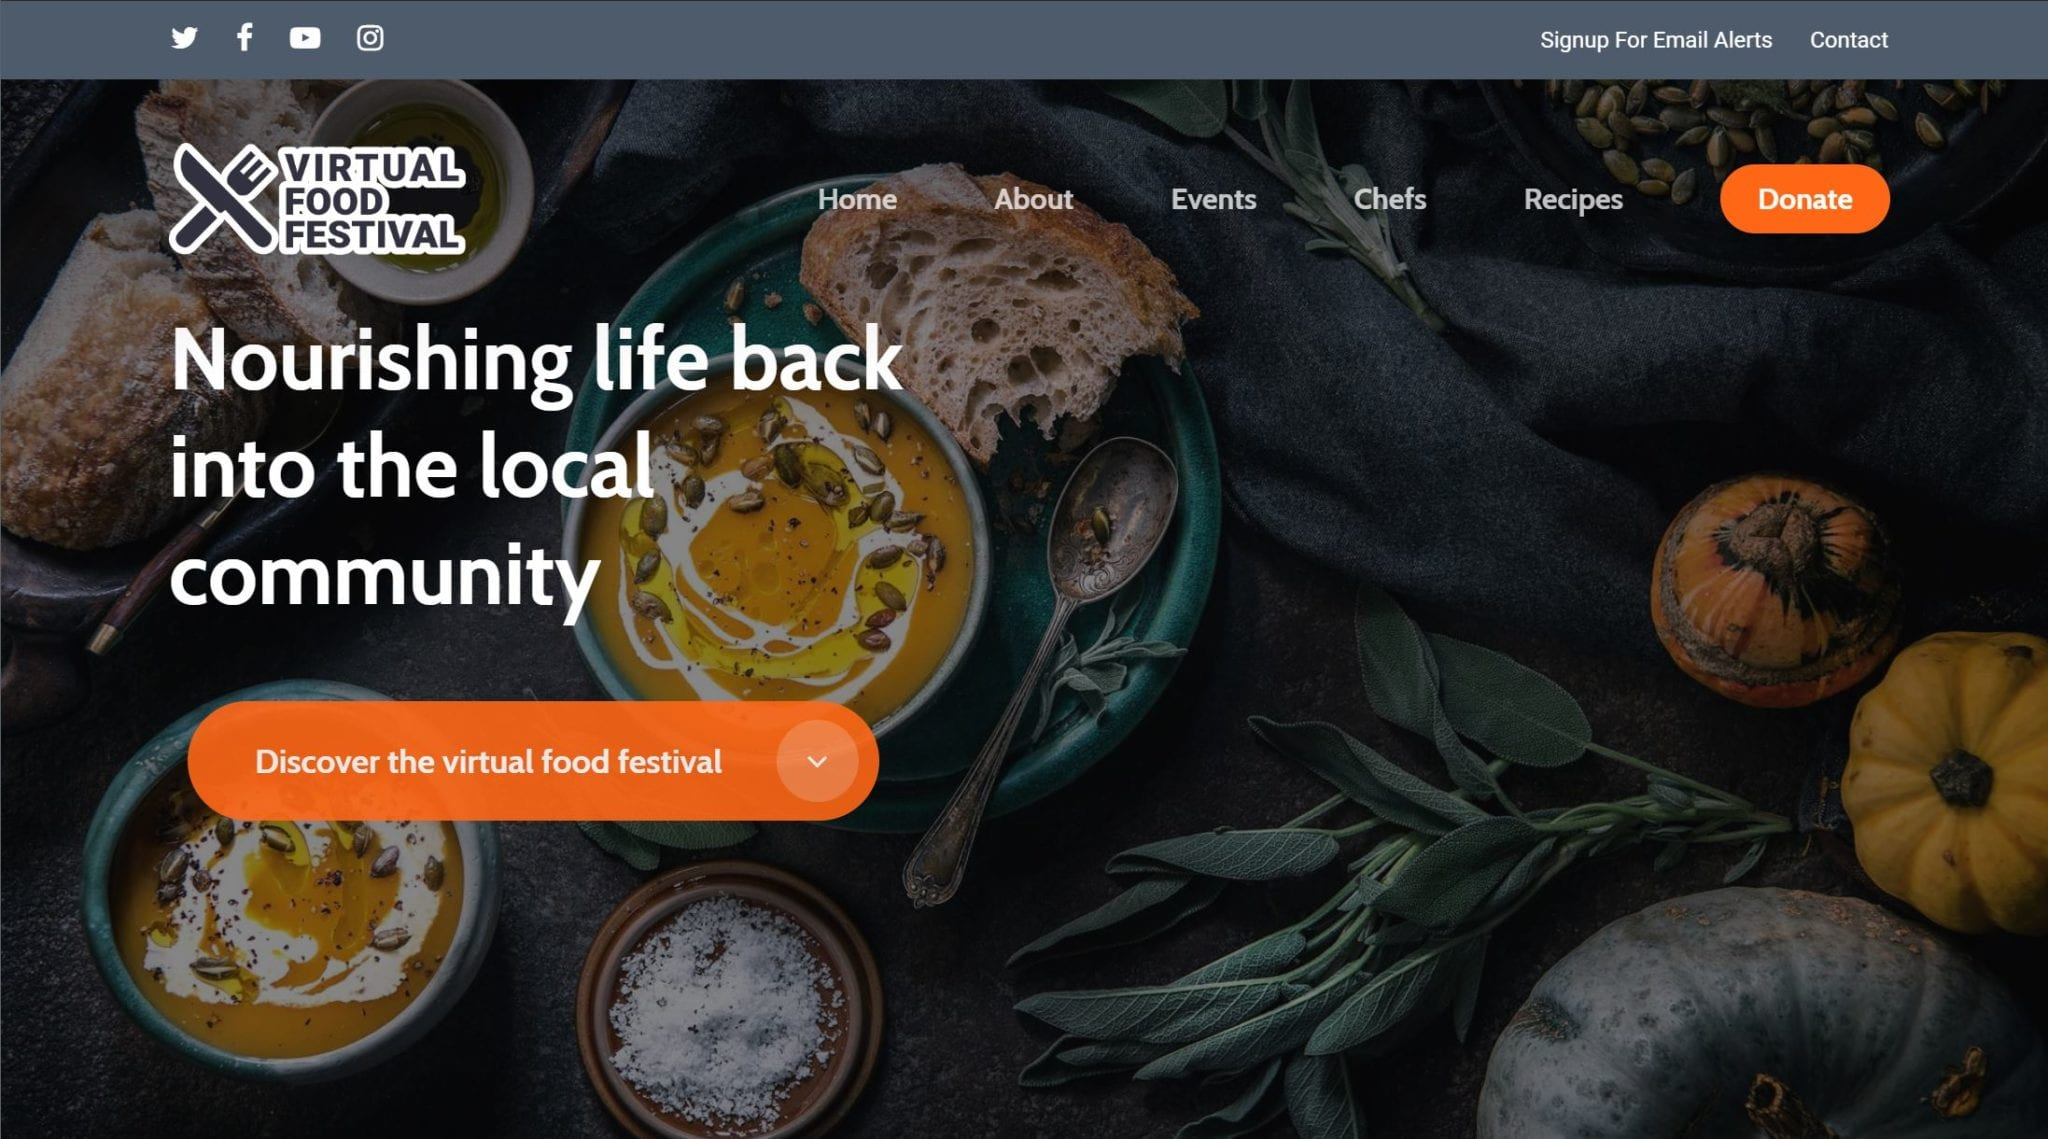 Virtual Food Festival: The Thriving Online Culinary Community 1